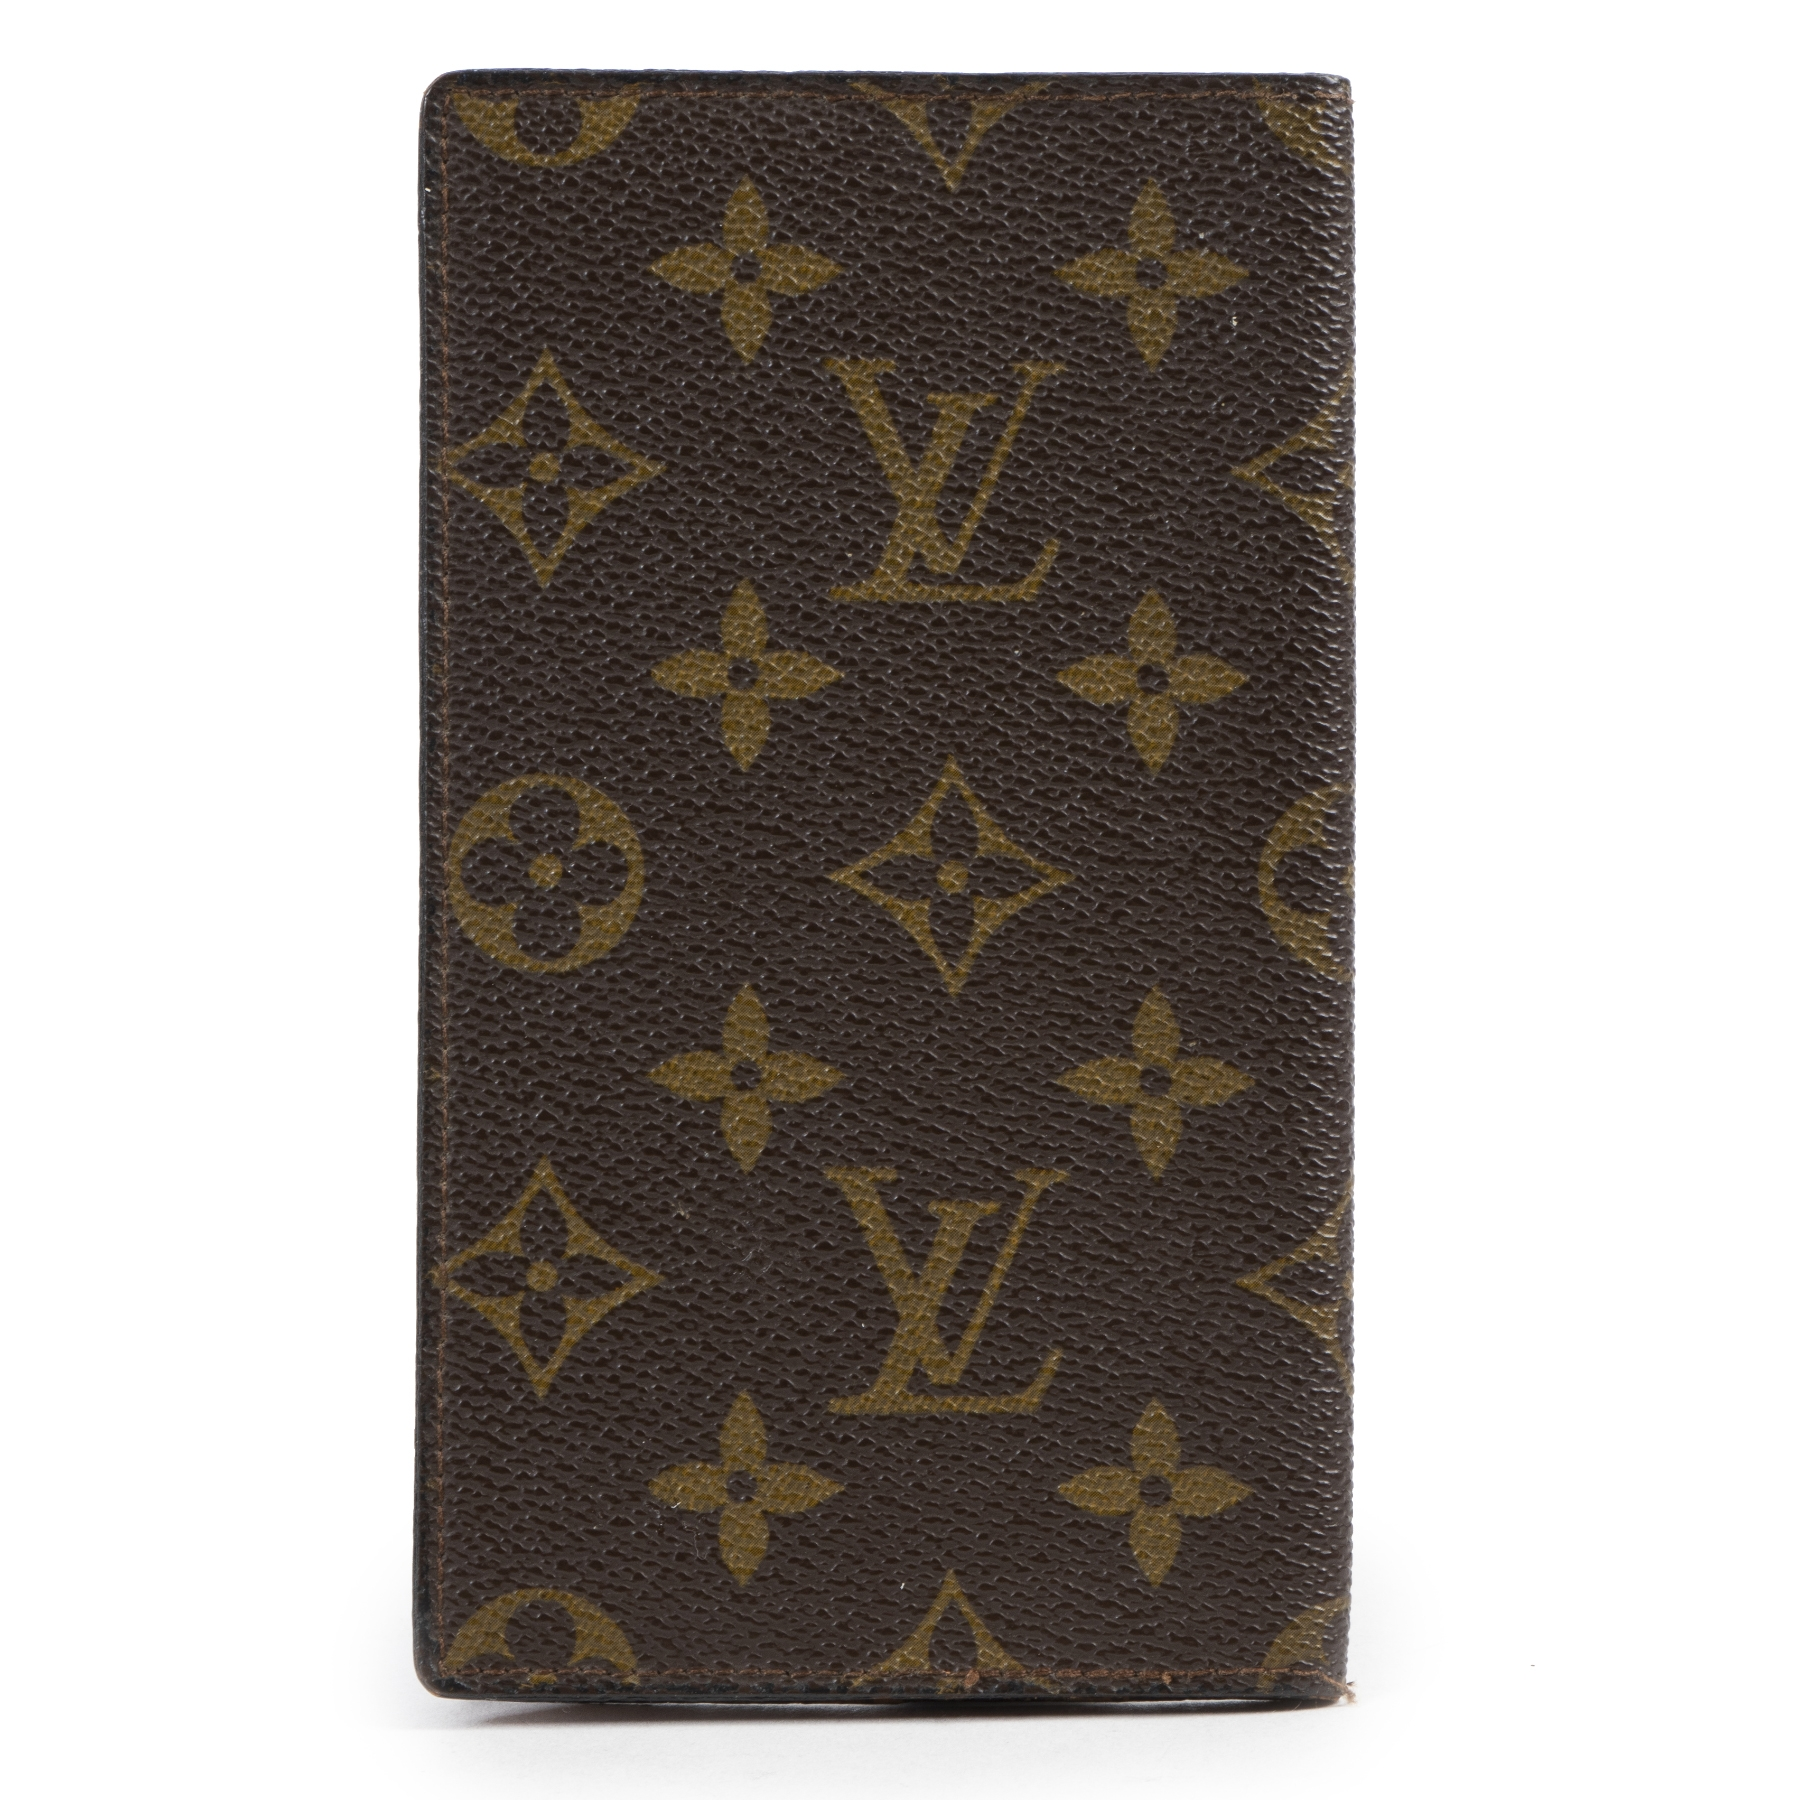 Authentic secondhand Louis Vuitton Monogram Passport Holder designer bags fashion luxury vintage webshop safe secure online shopipng